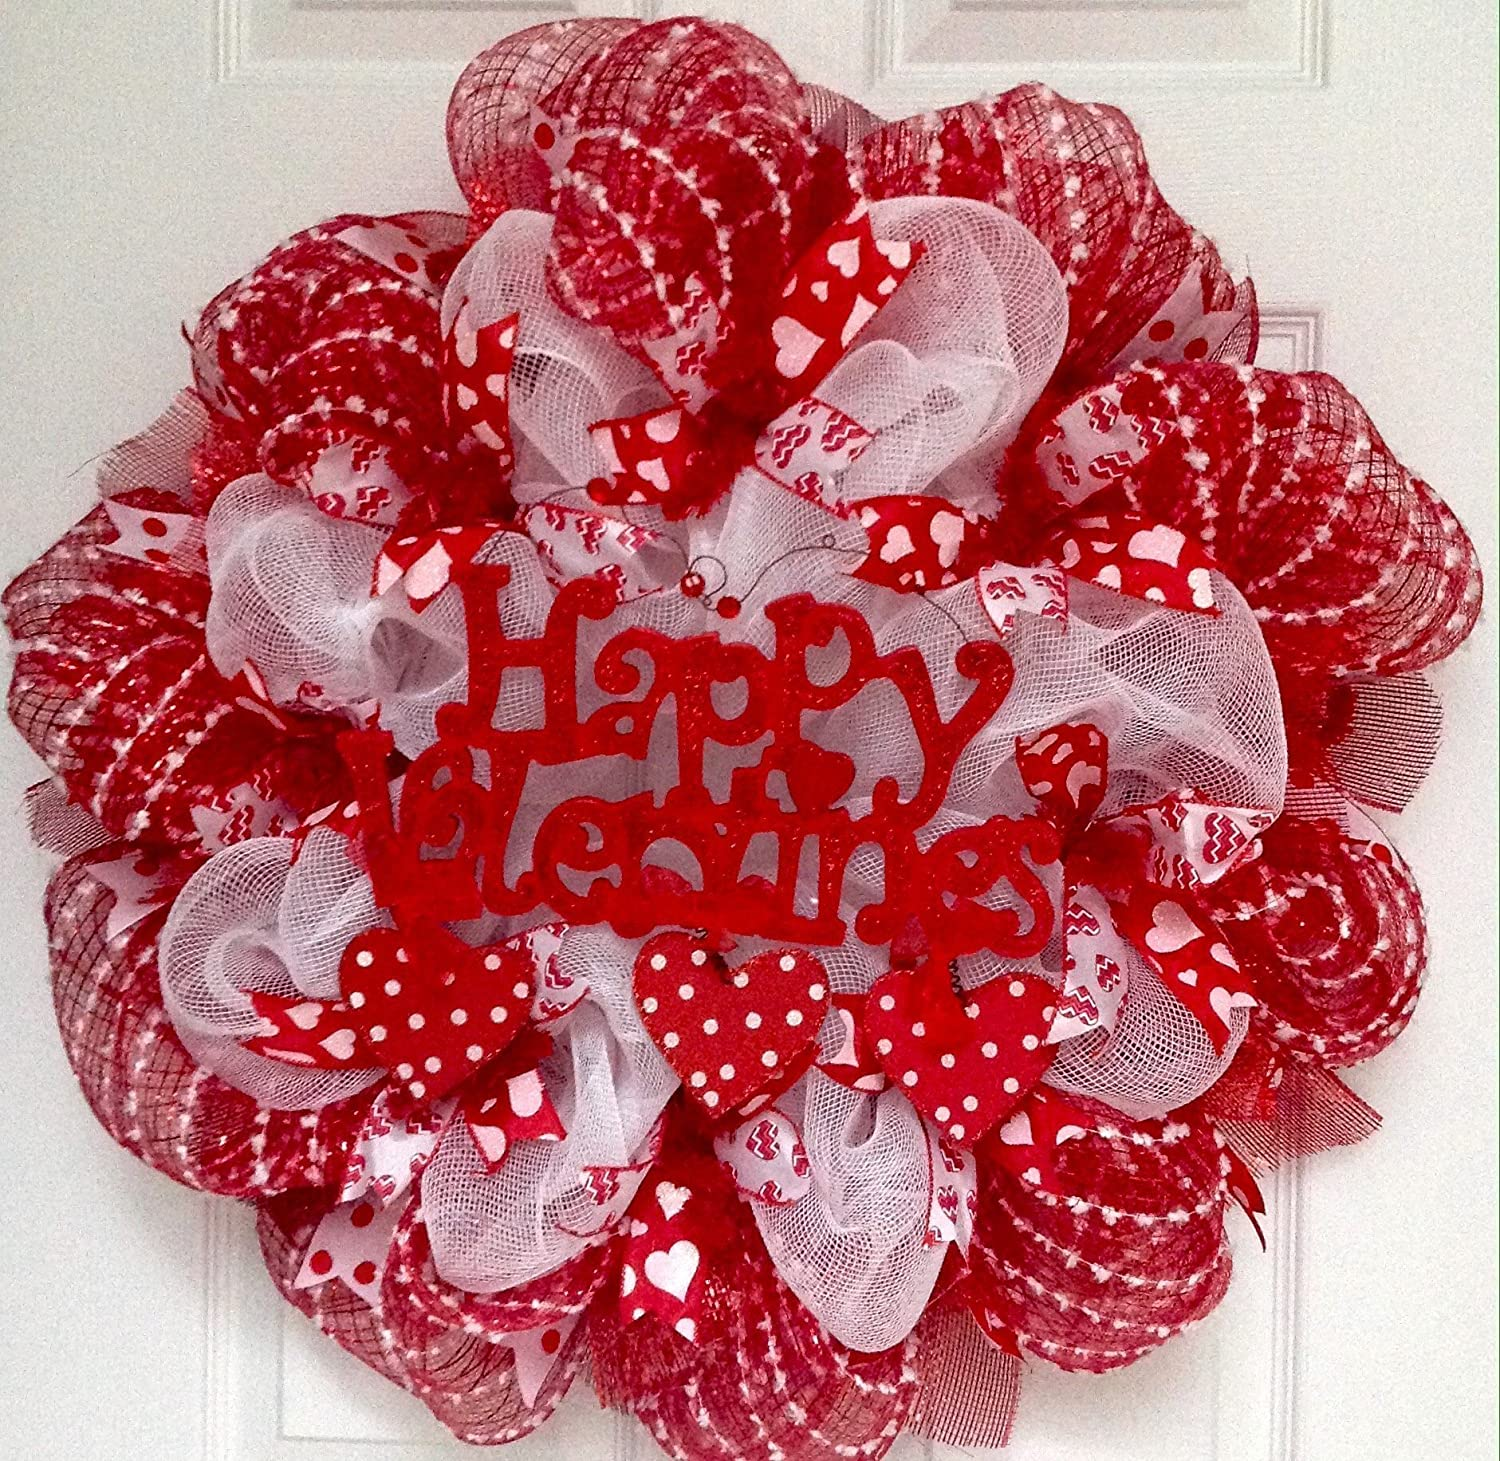 Happy Valentines Day Wreath With Dangling Hearts Handmade Deco Mesh